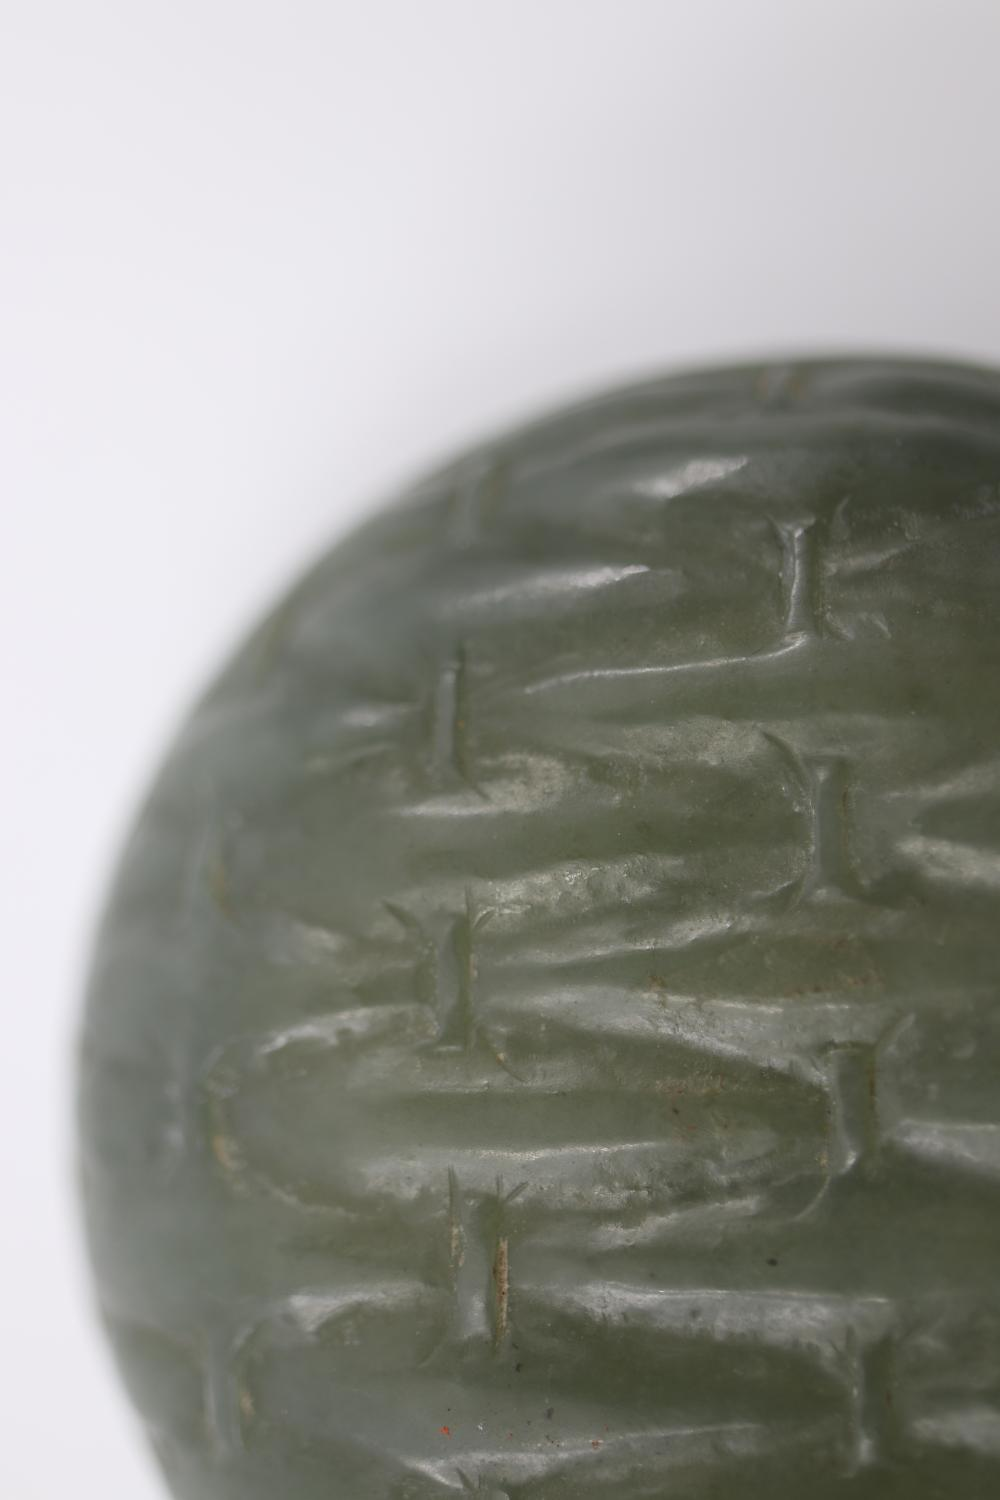 FINELY CARVED ROUND CELADON JADE PASTE BOX ON WOODEN STAND, WOVEN BAMBOO PATTERN TO LID AND BASE, QING DYNASTY, 47 GRAMS, MEASURES 5CM DIAM X 2CM H